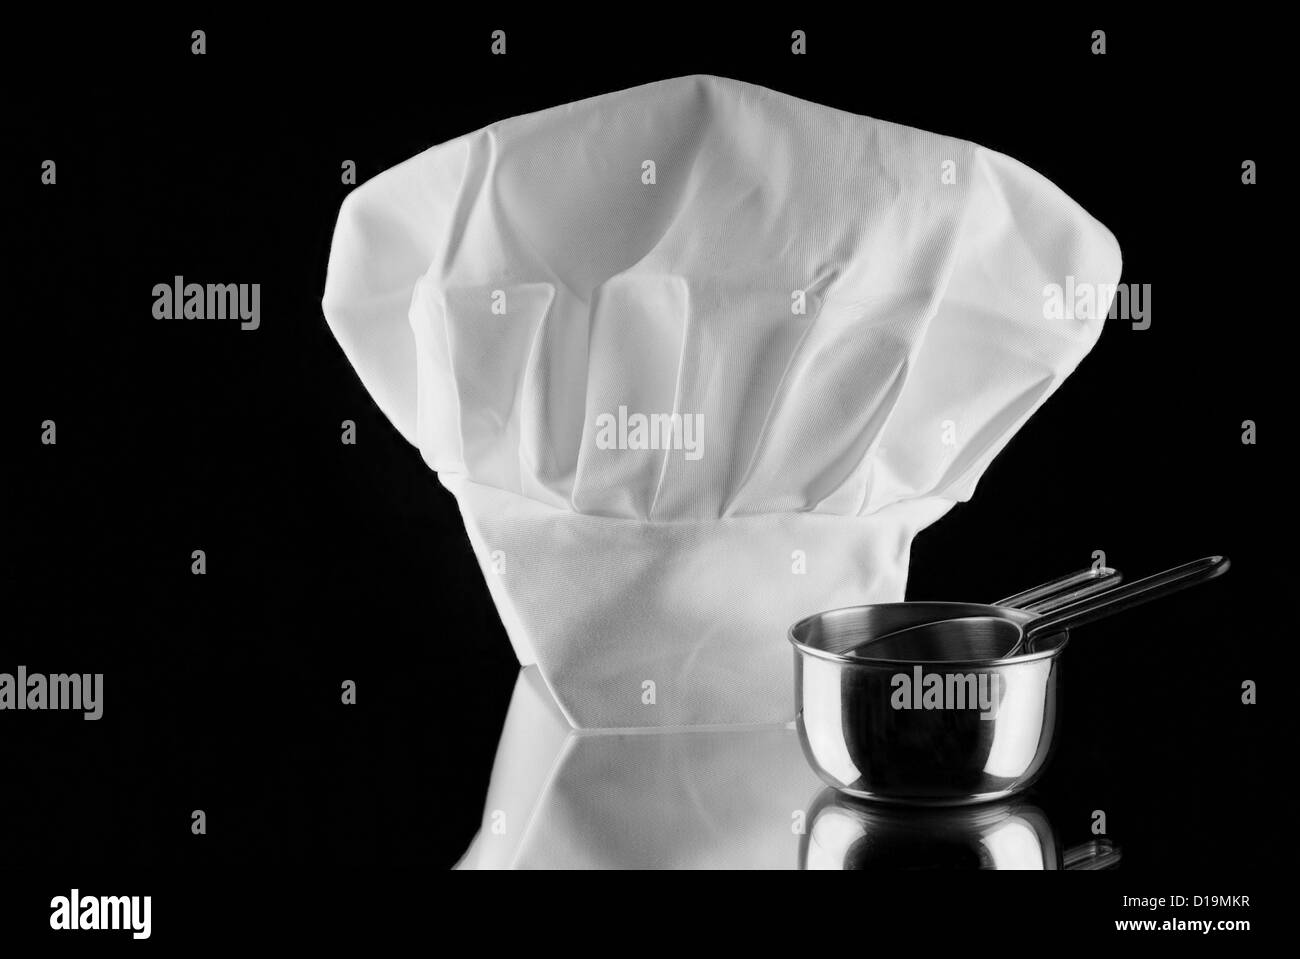 Chef's hat with measuring cup reflecting on mirror with black background - Stock Image